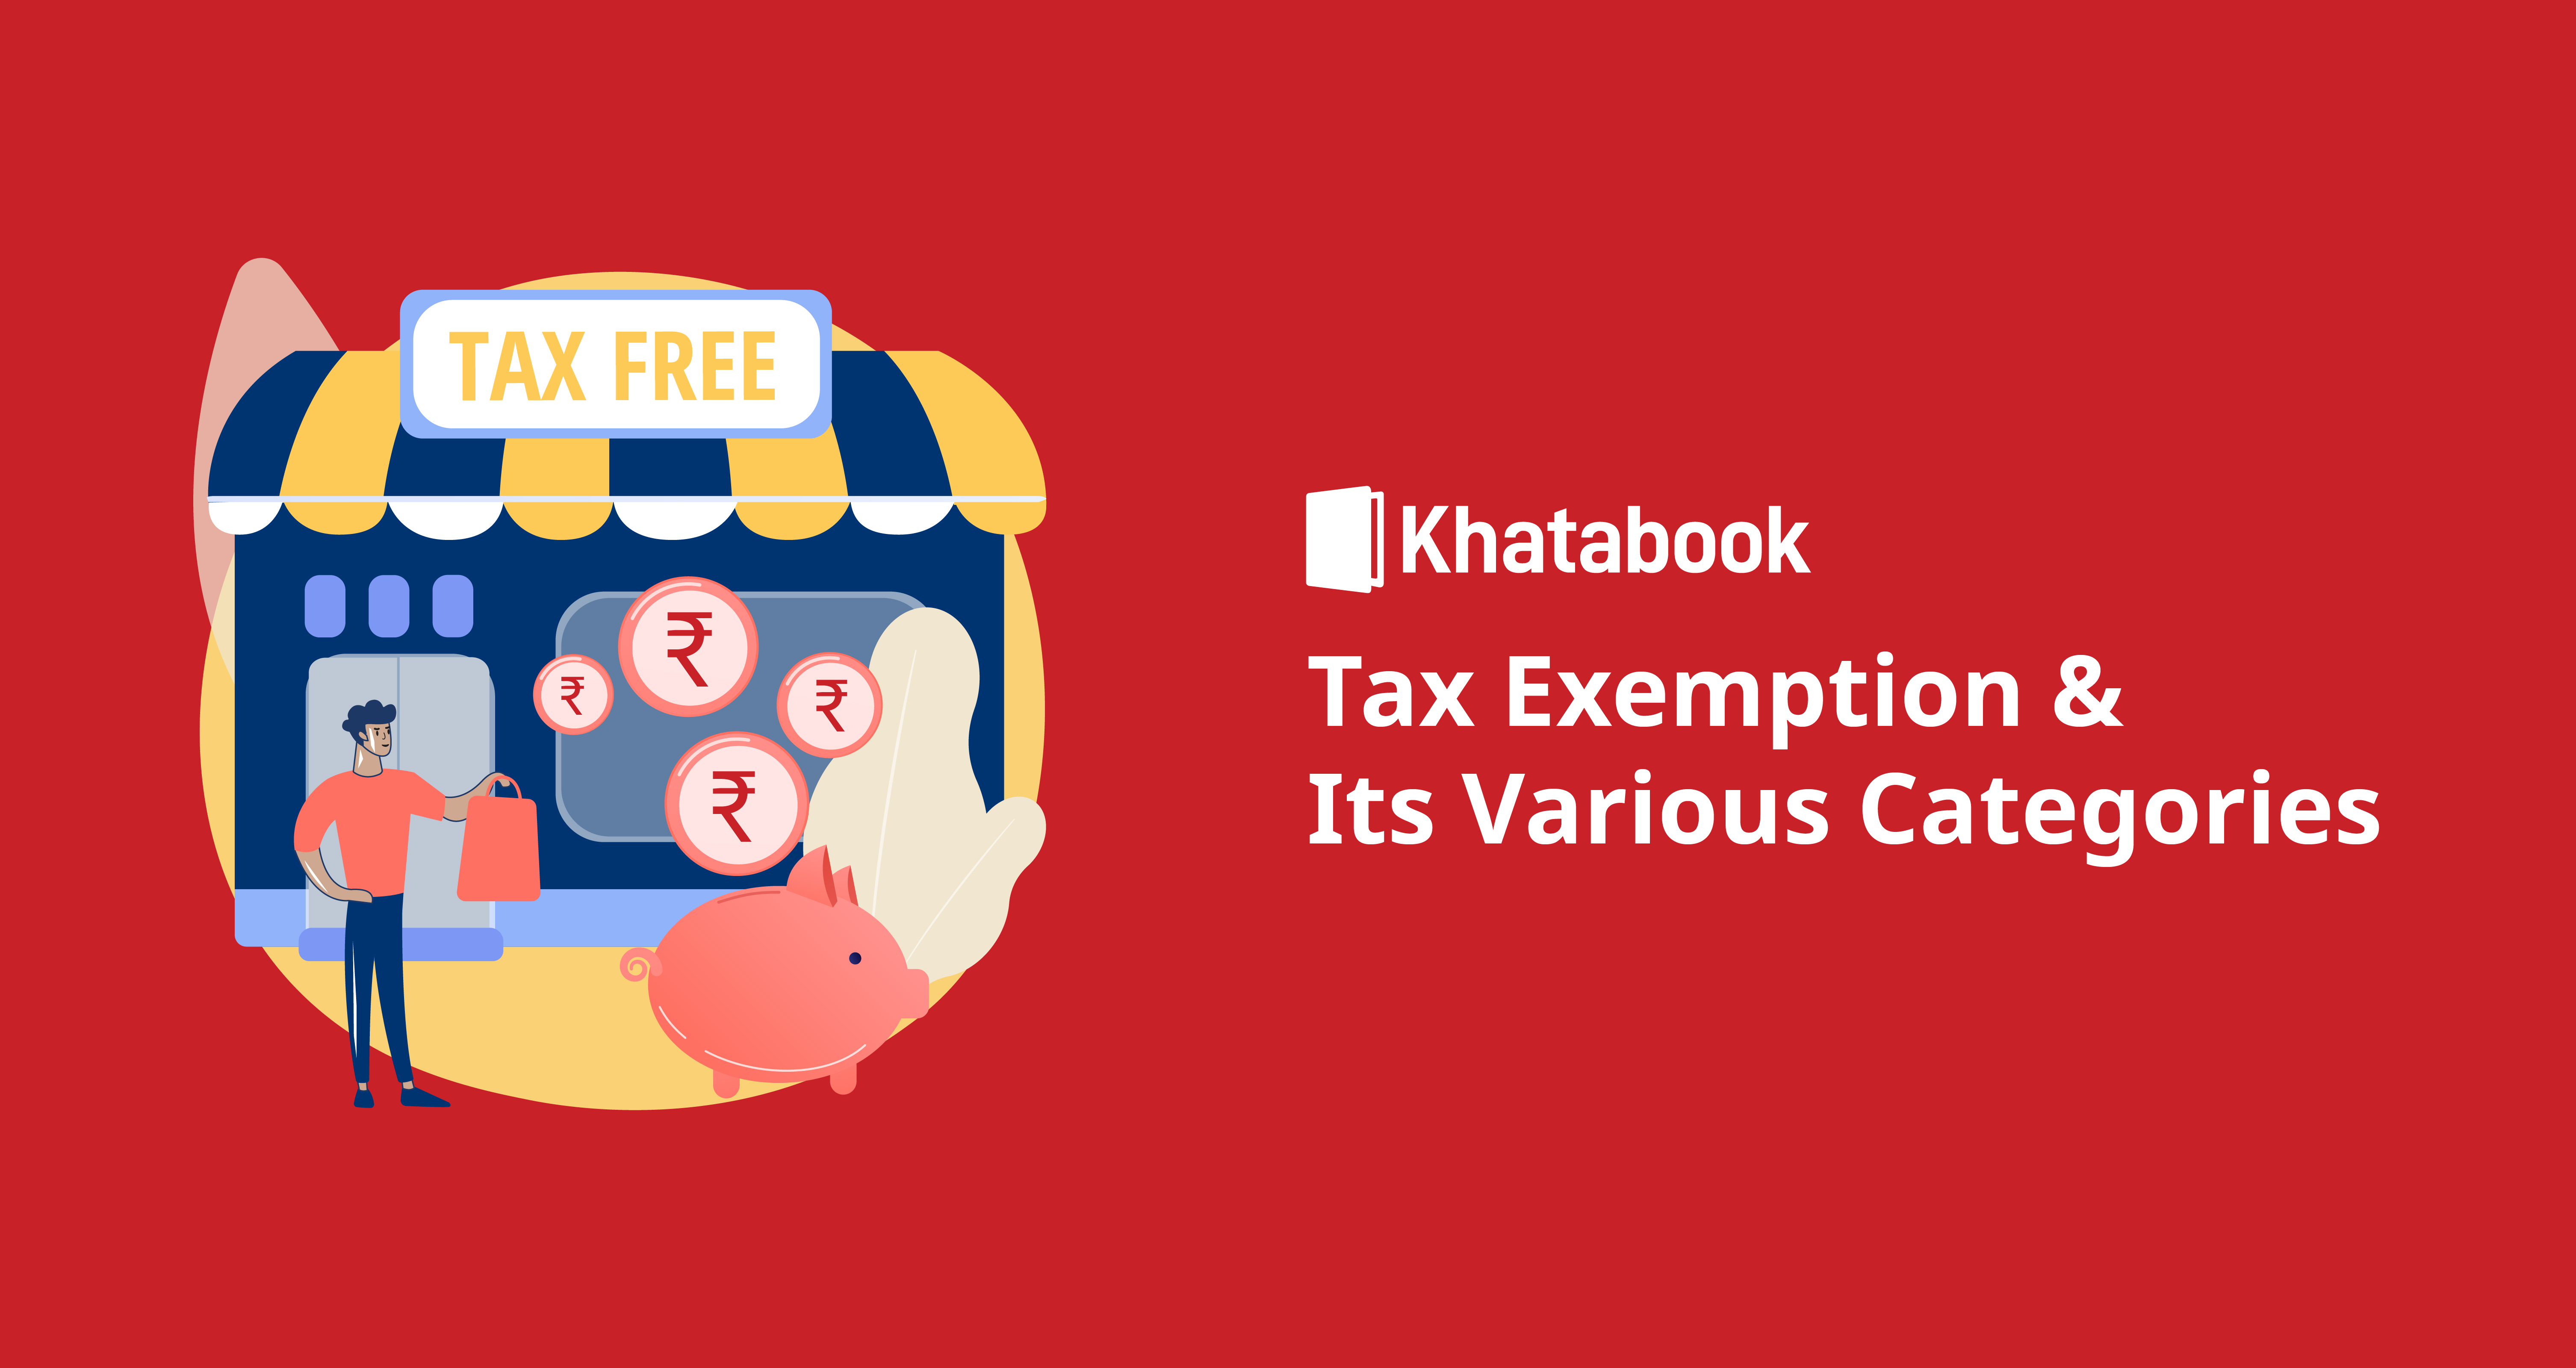 All About Tax Exemption & Its Categories for FY 2020-21